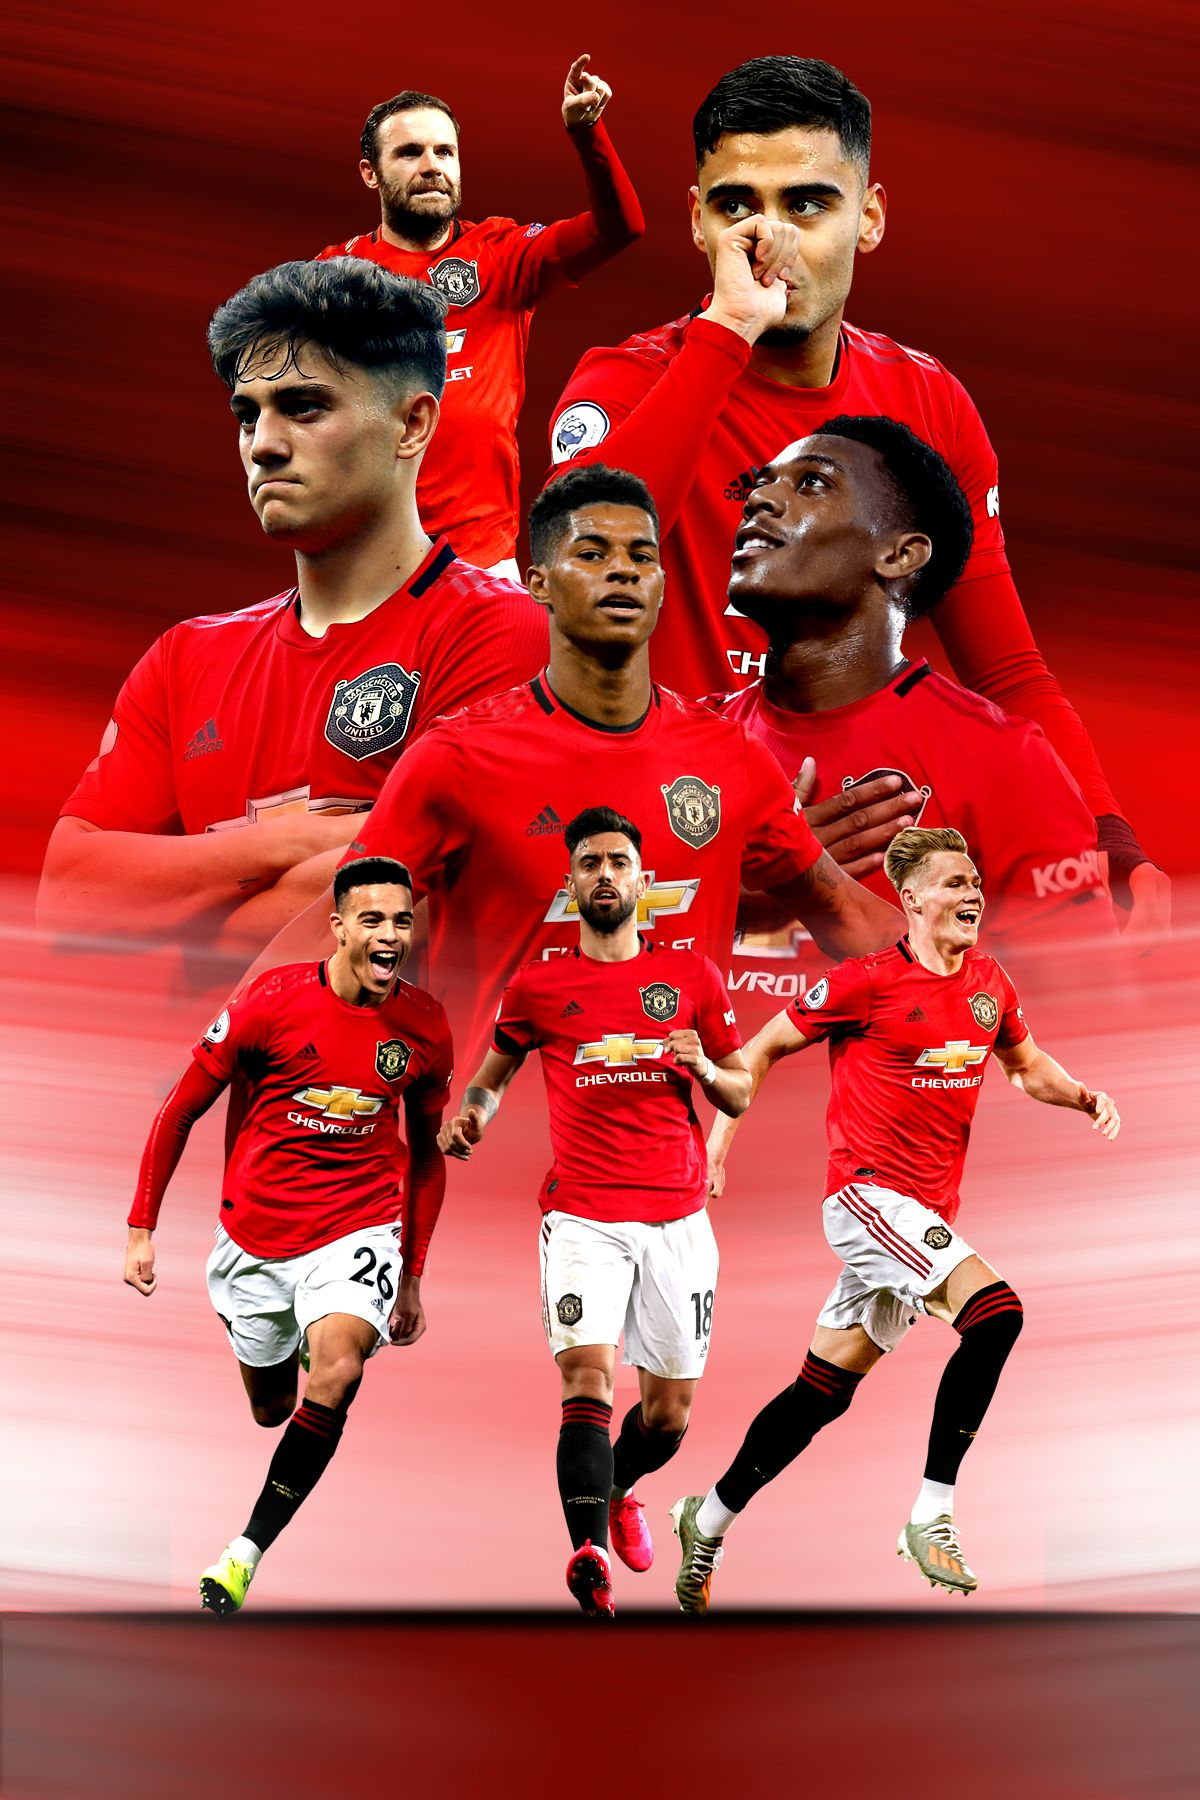 15+ Manchester United Wallpaper 2020/21